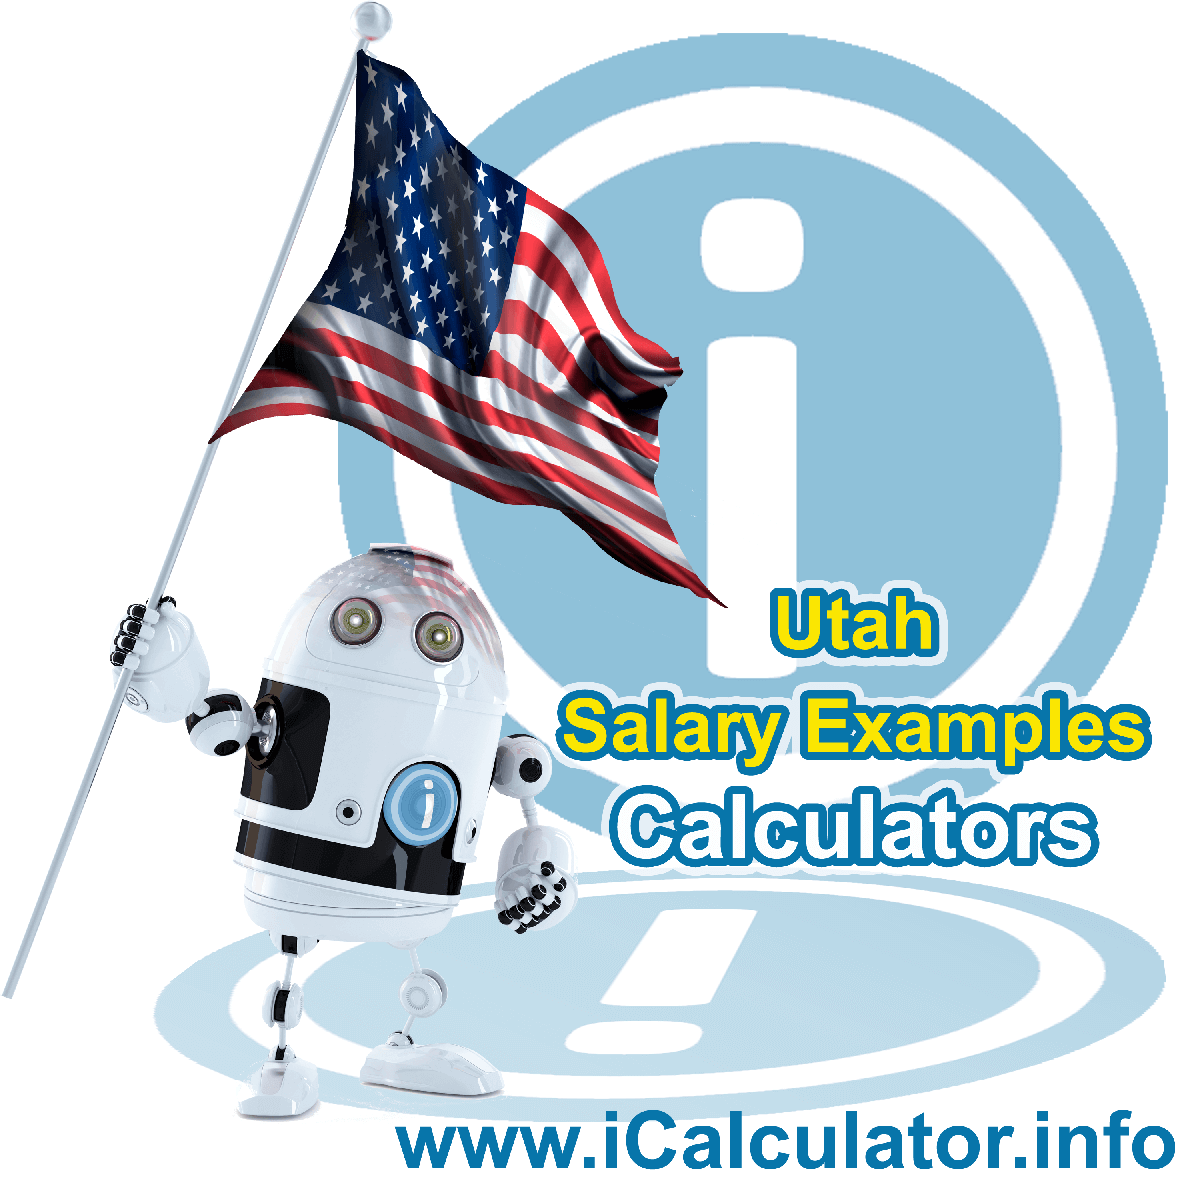 Utah Salary Example for $140,000.00 in 2020 | iCalculator | $140,000.00 salary example for employee and employer paying Utah State tincome taxes. Detailed salary after tax calculation including Utah State Tax, Federal State Tax, Medicare Deductions, Social Security, Capital Gains and other income tax and salary deductions complete with supporting Utah state tax tables